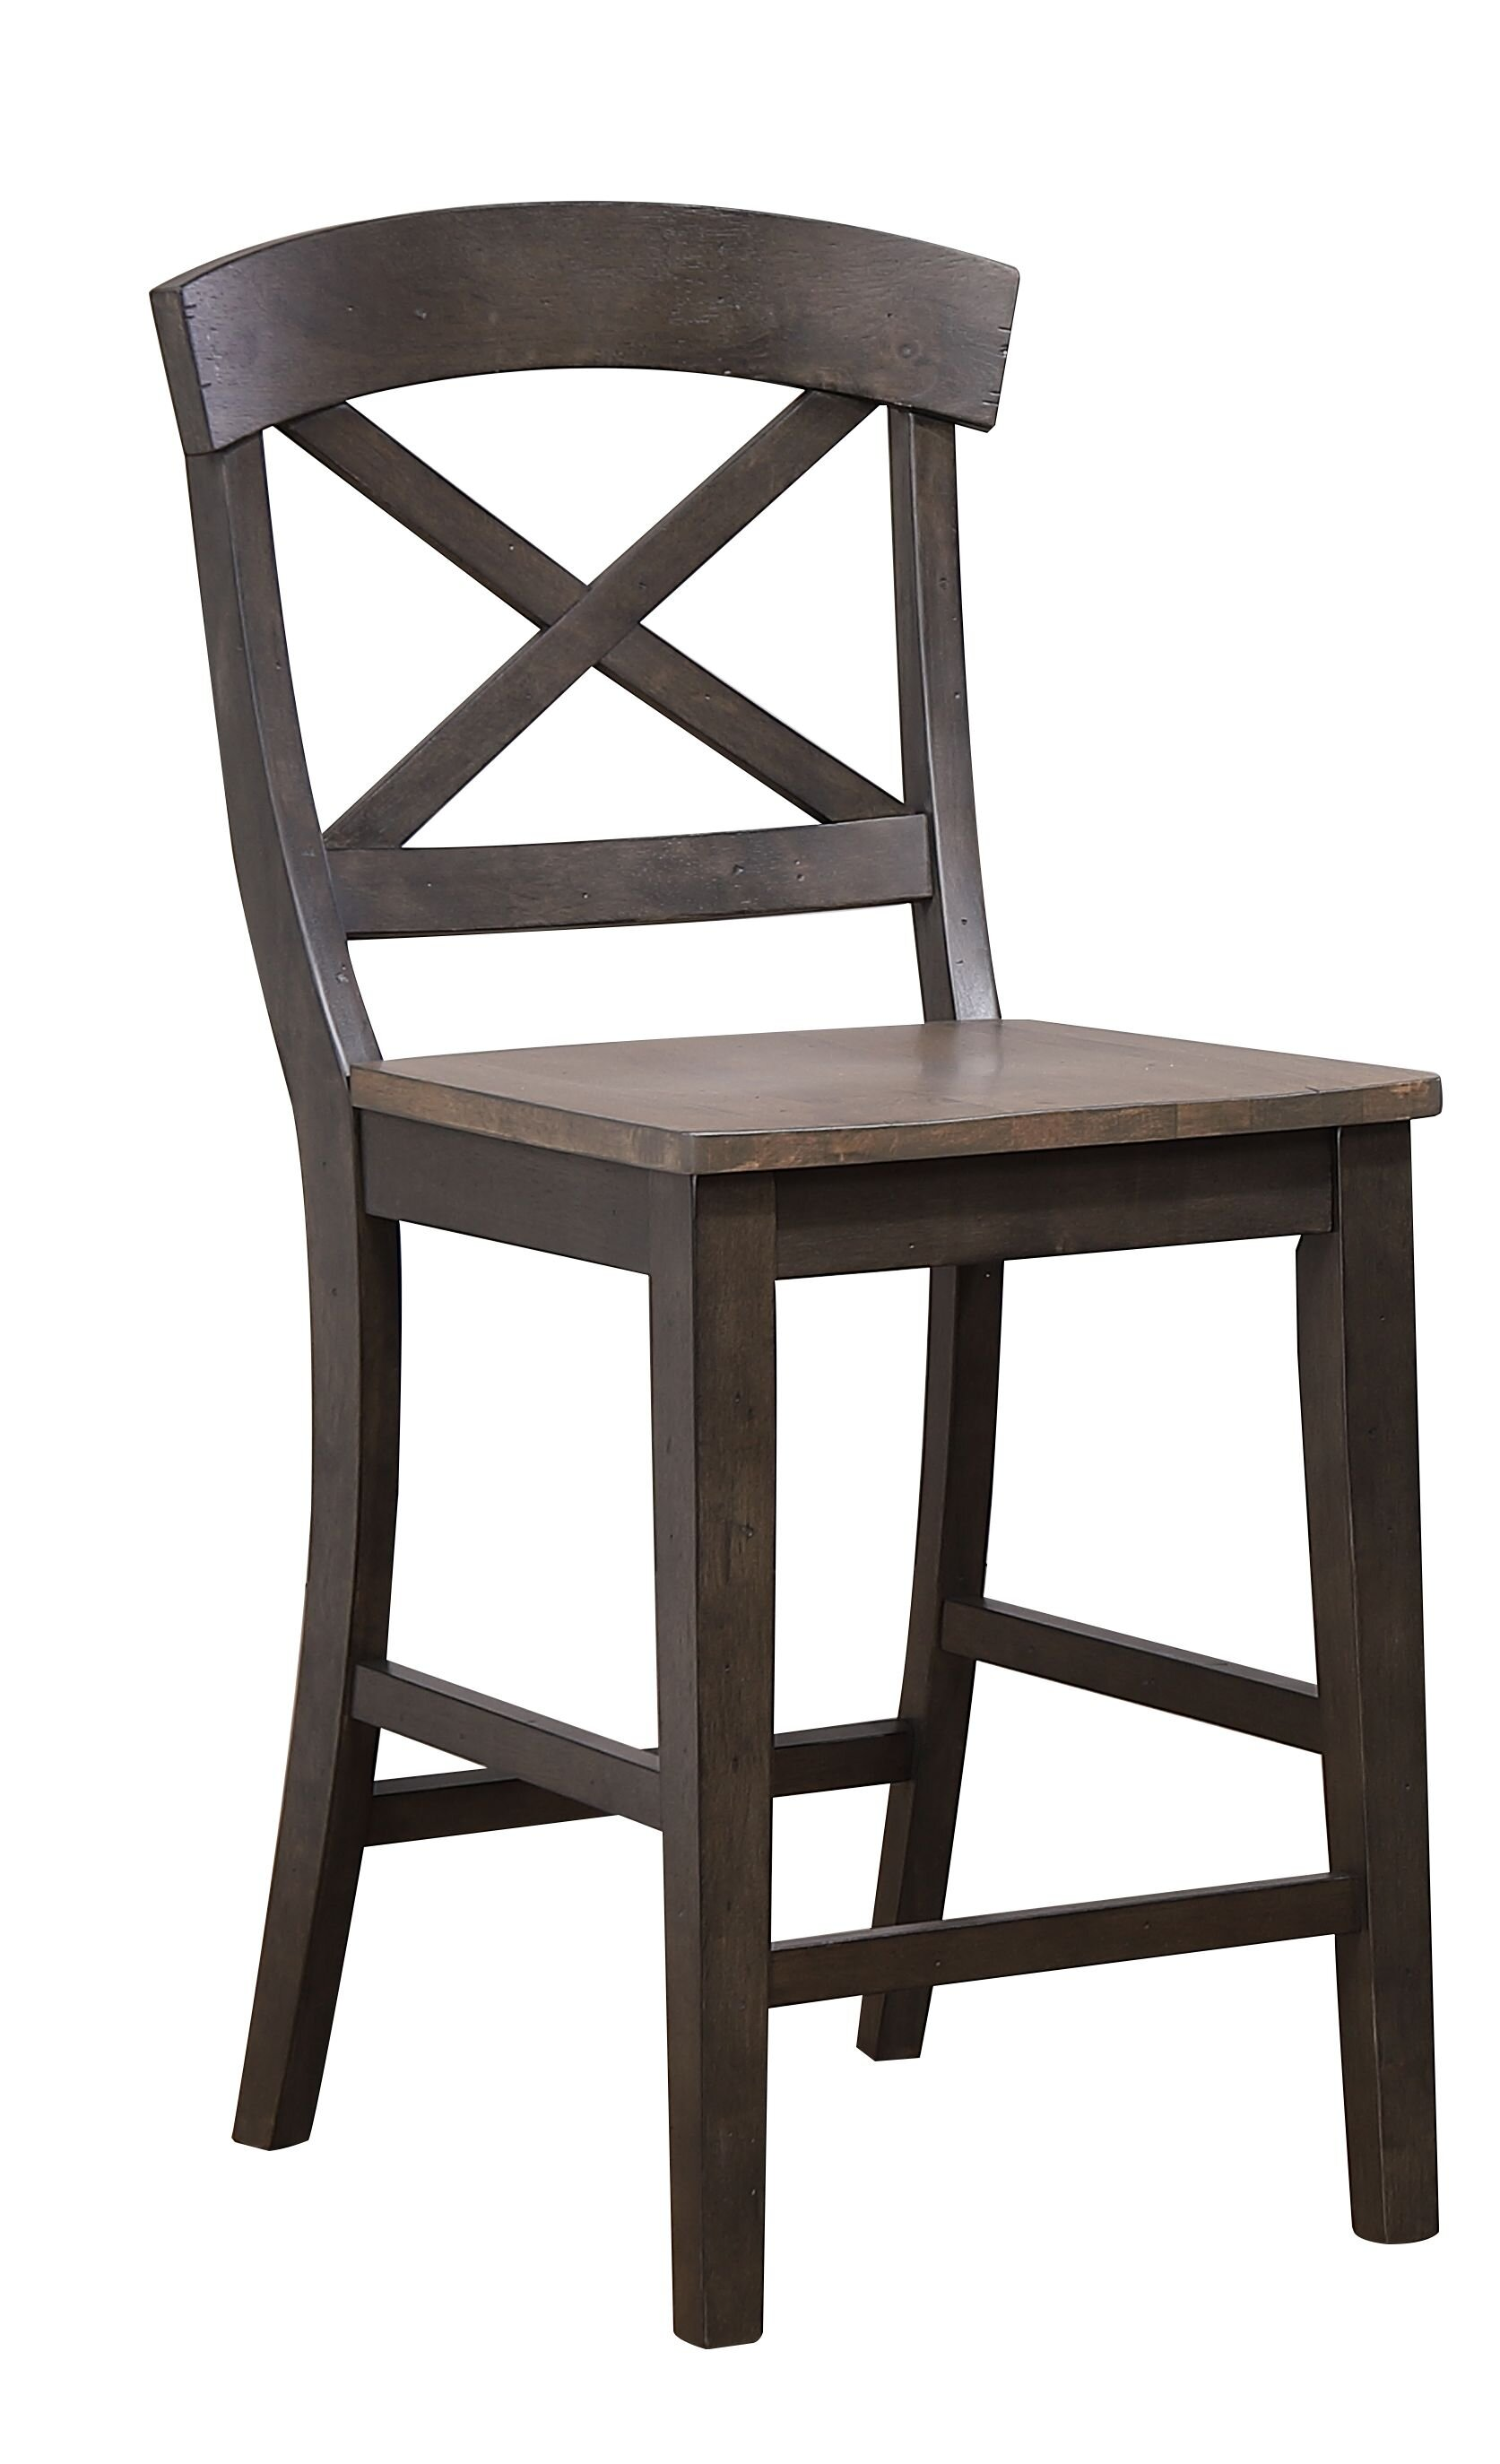 "Transitional X-Back 24"" Counter Height Stool In Grey Stone Black Stone"